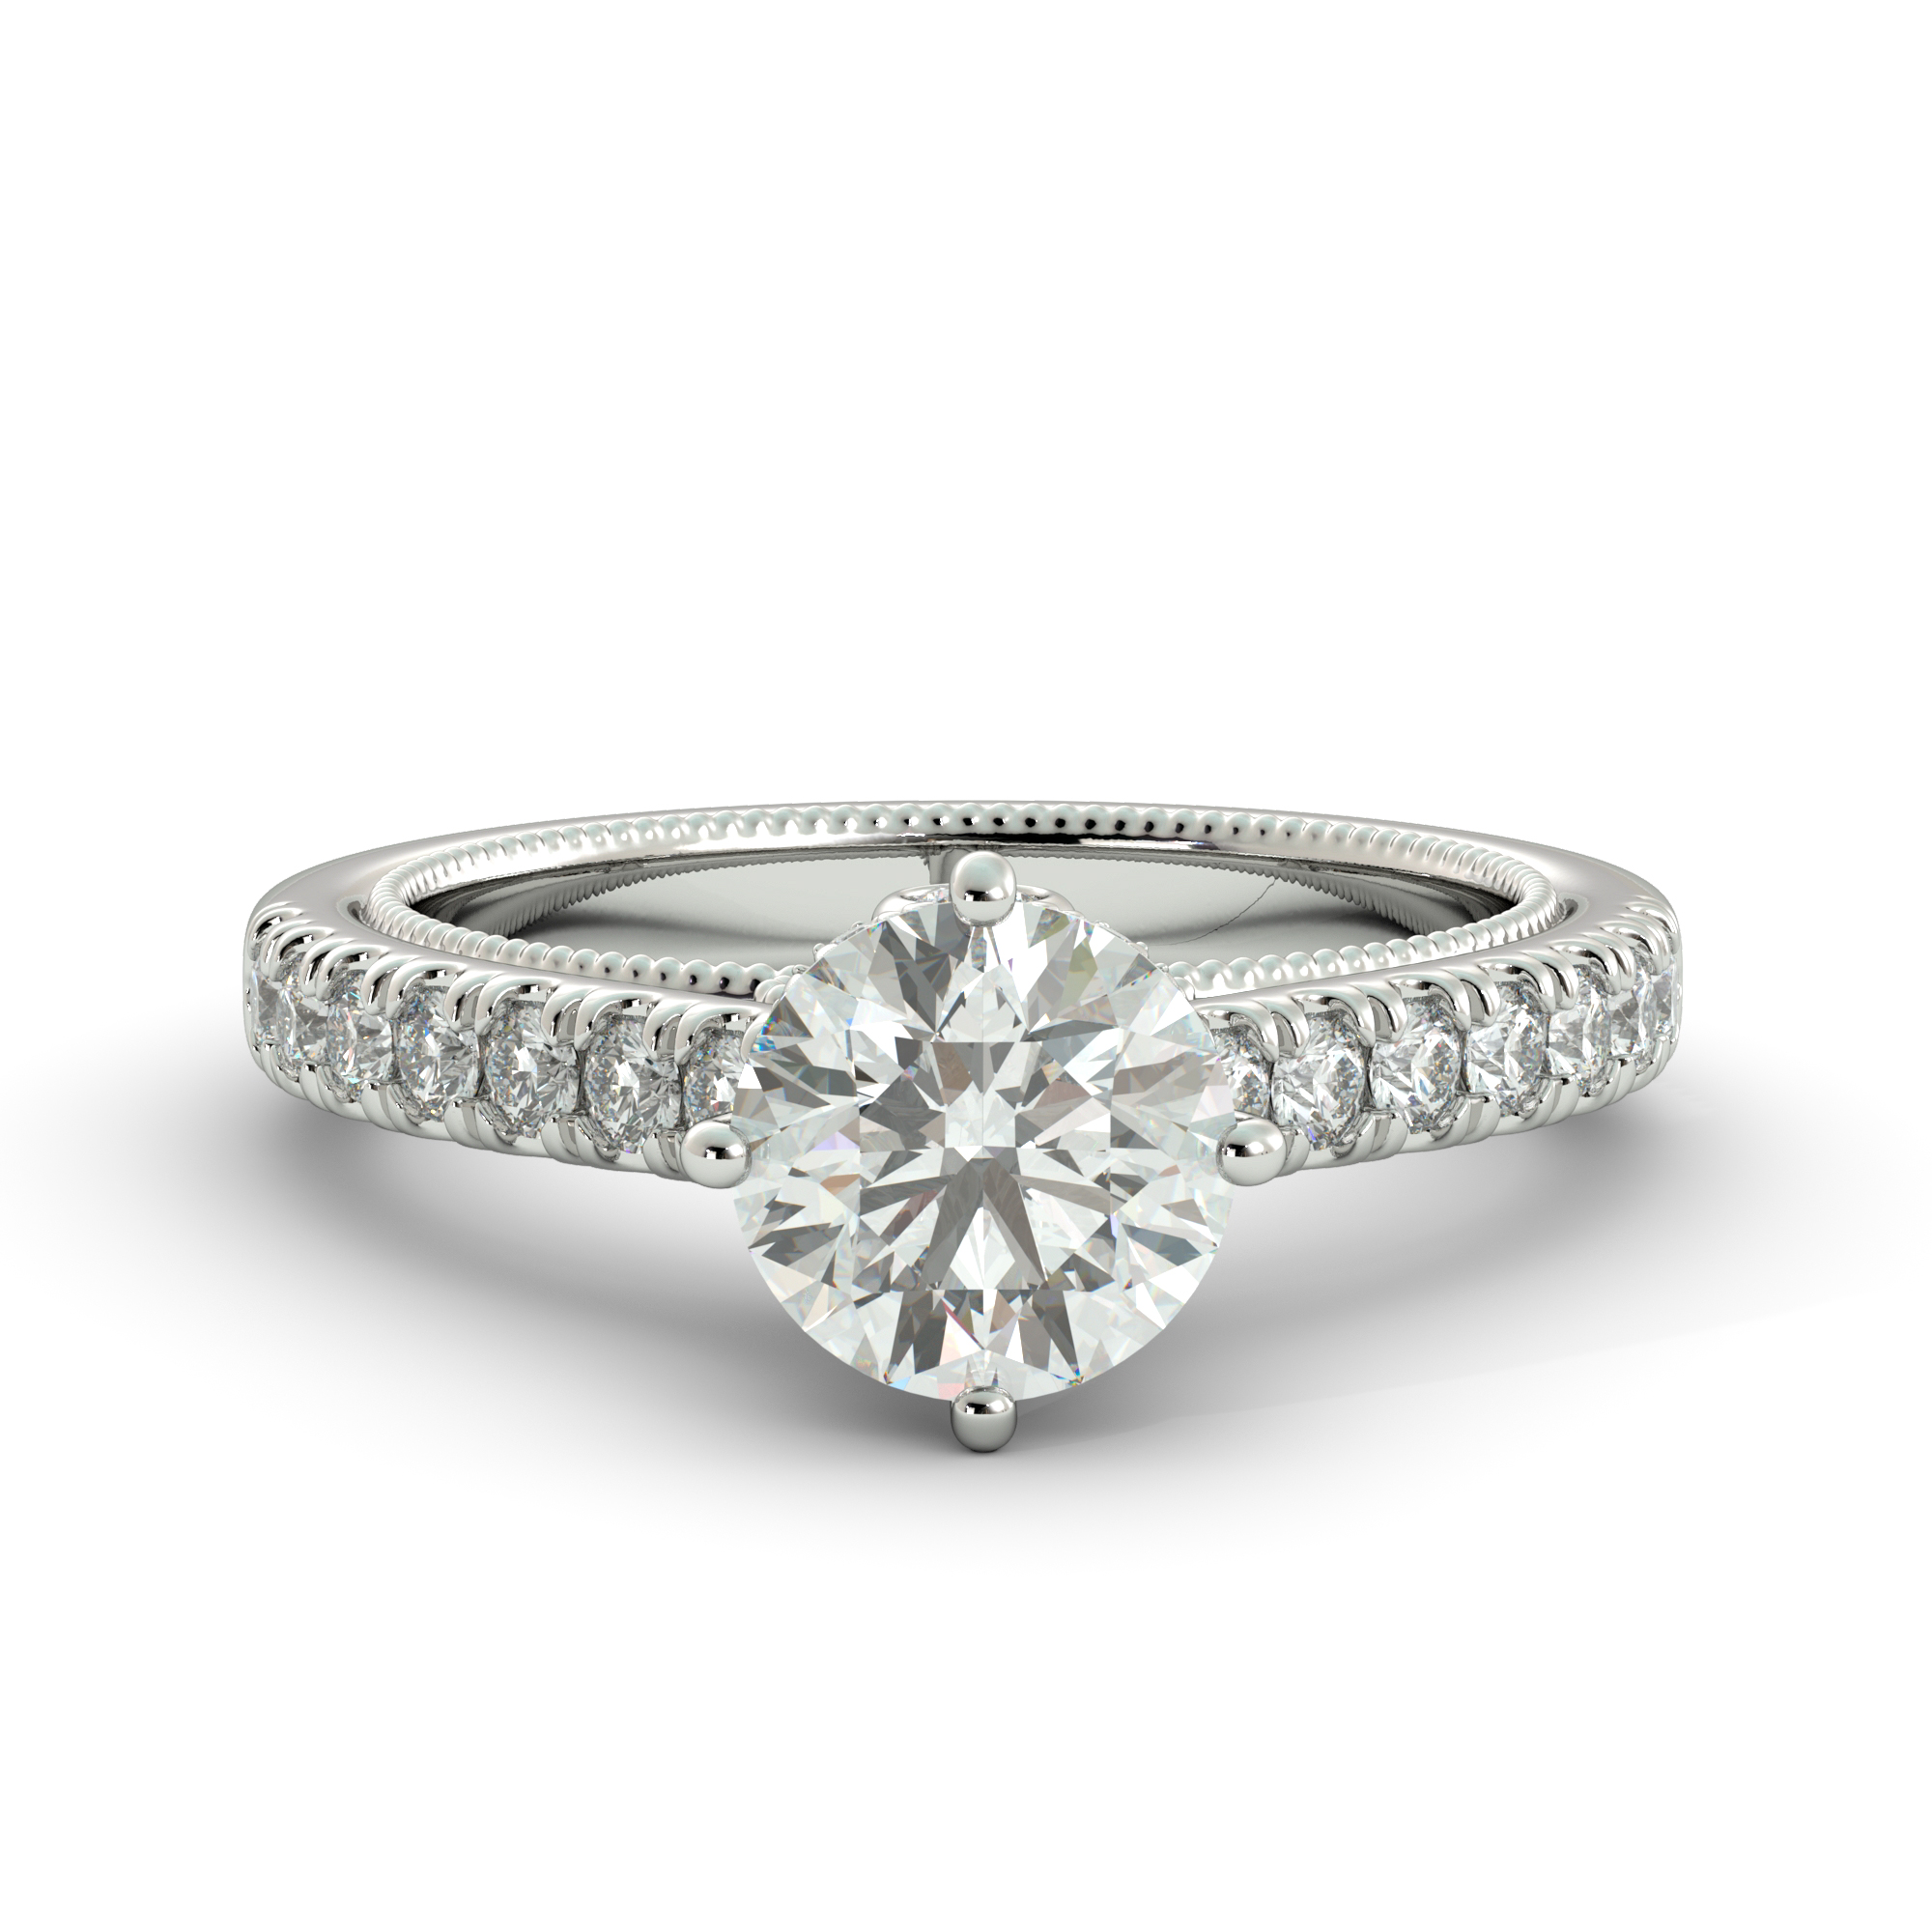 2.90 ct C&C Forever One Round Cut Moissanite & Diamond Engagement Ring 14White Gold by J&H Jewelers